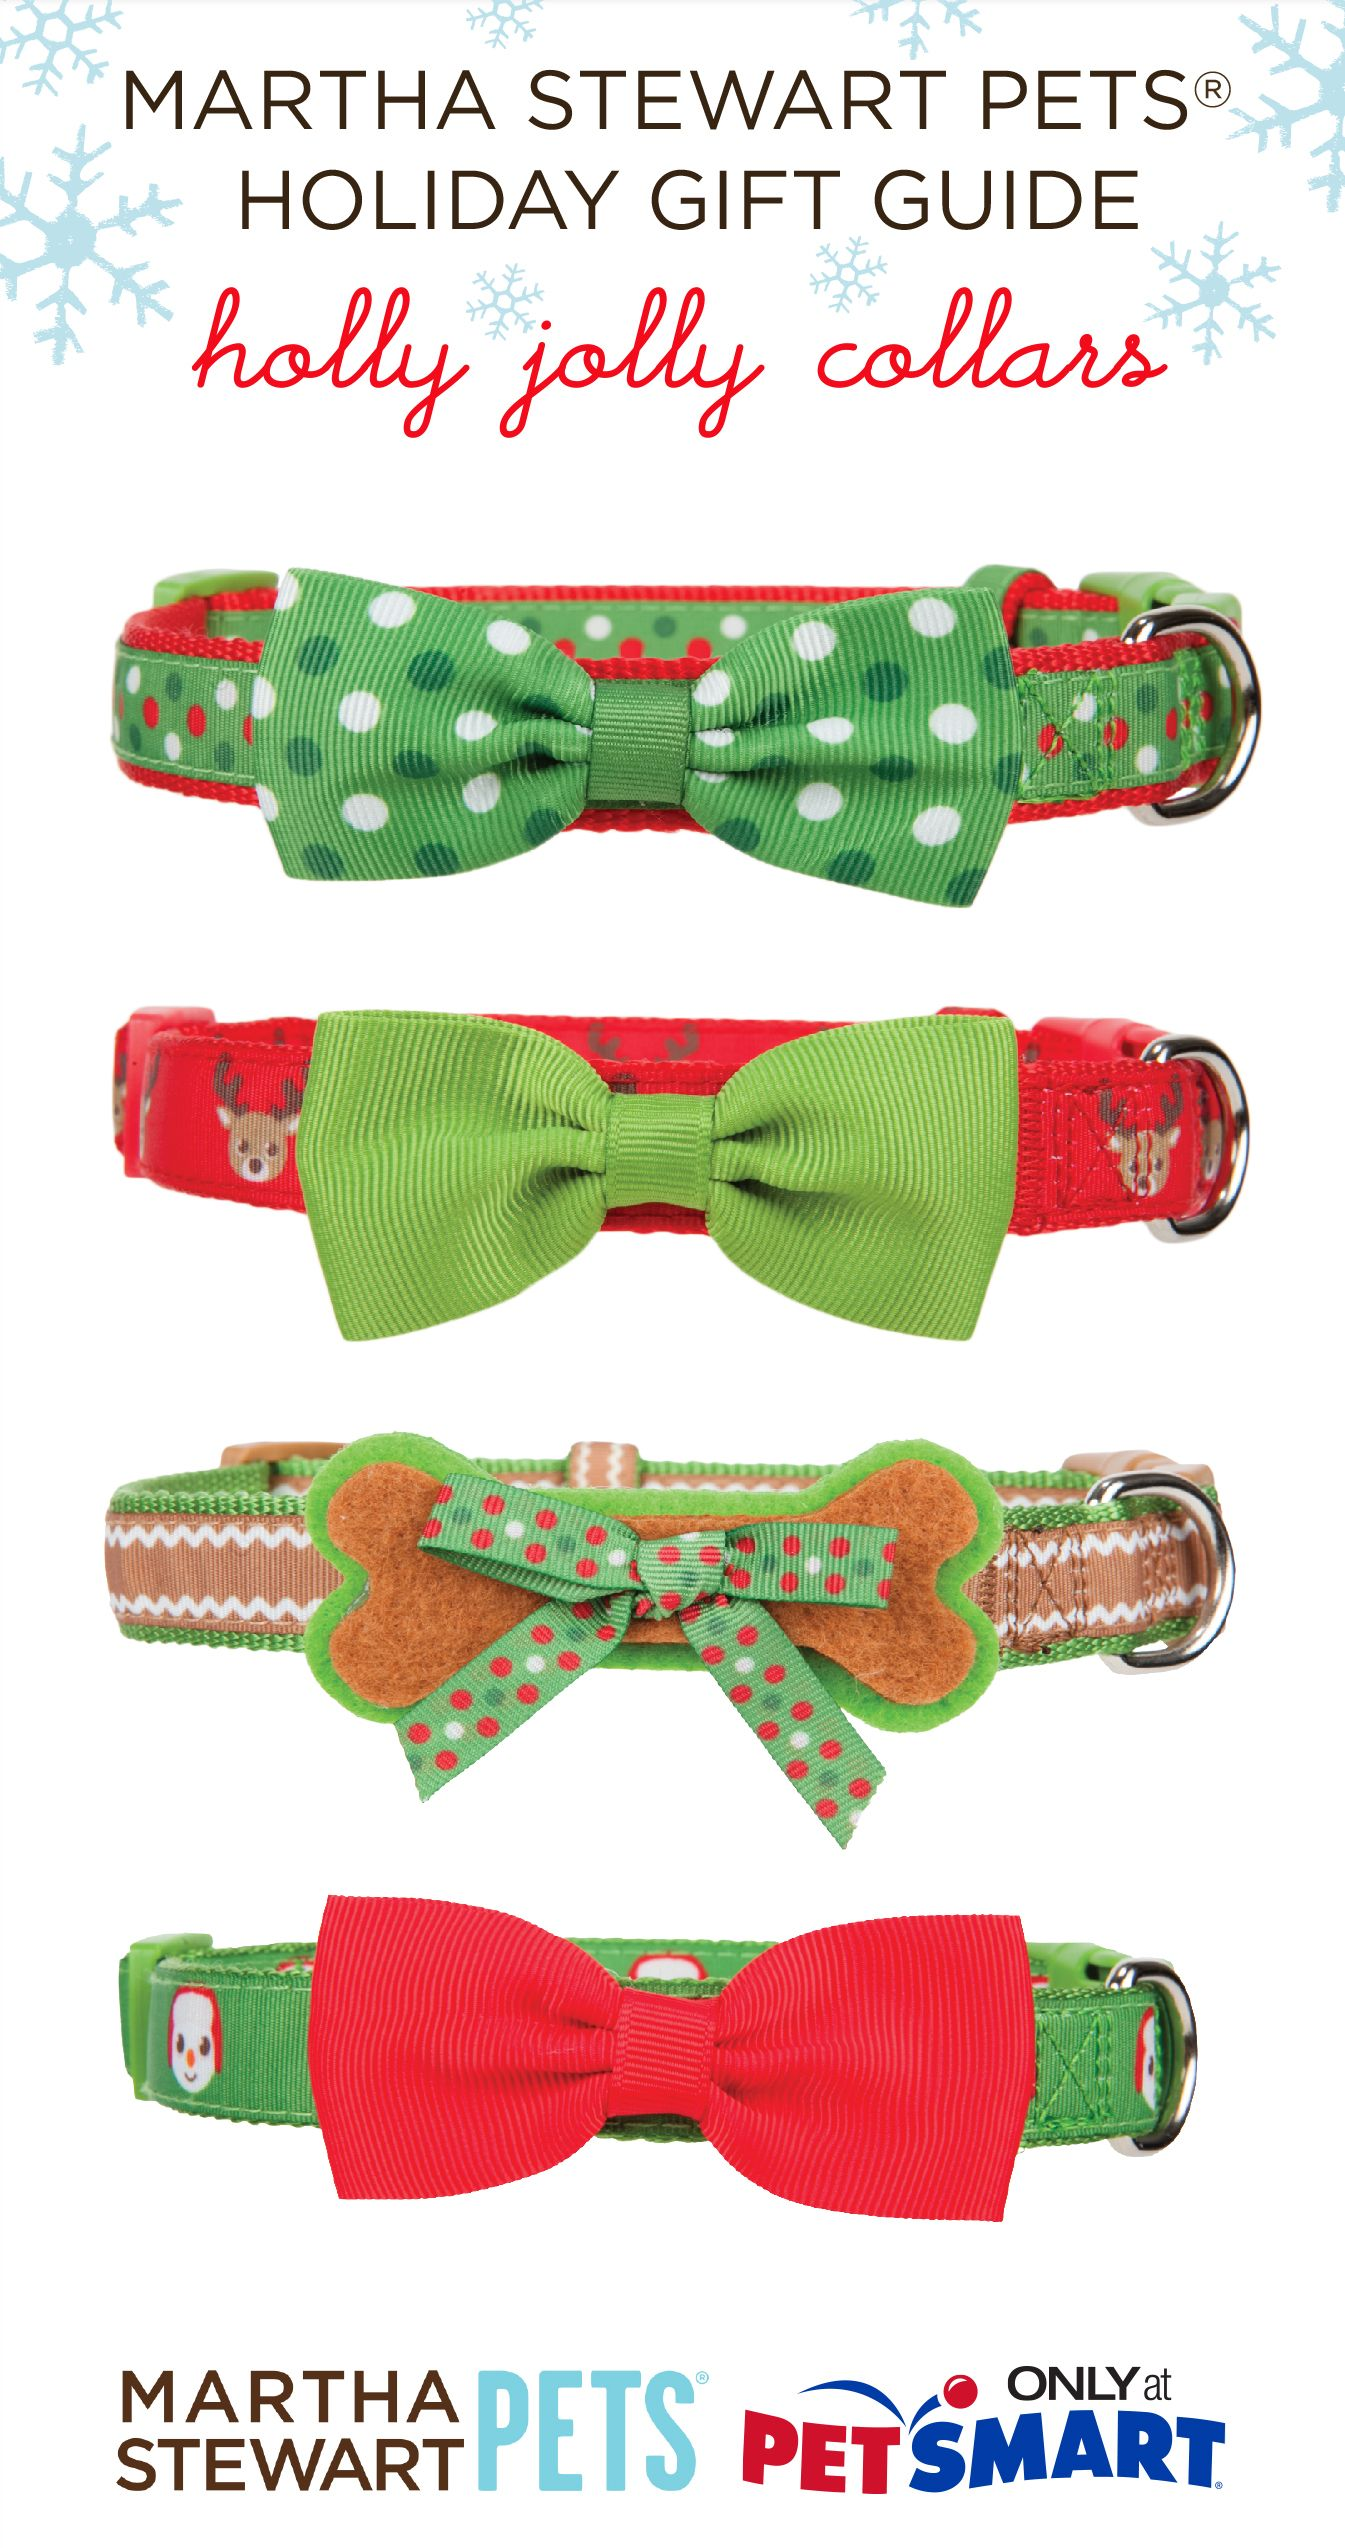 Put a bow on it! Holly jolly dog #collars from #marthastewartpets @petsmartcorp